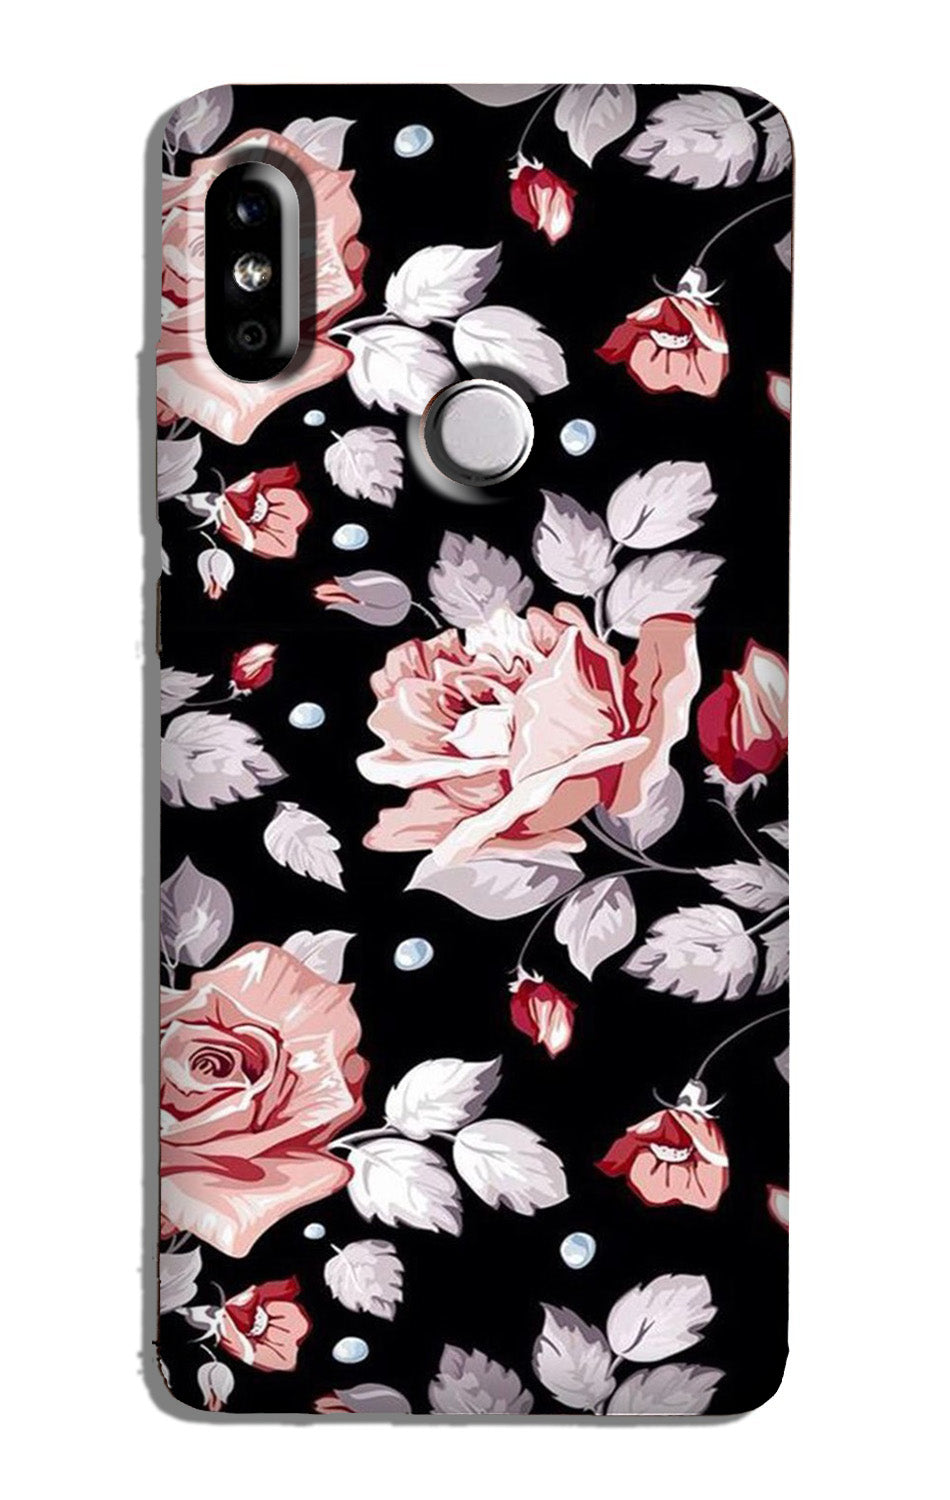 Pink rose Case for Redmi 6 Pro